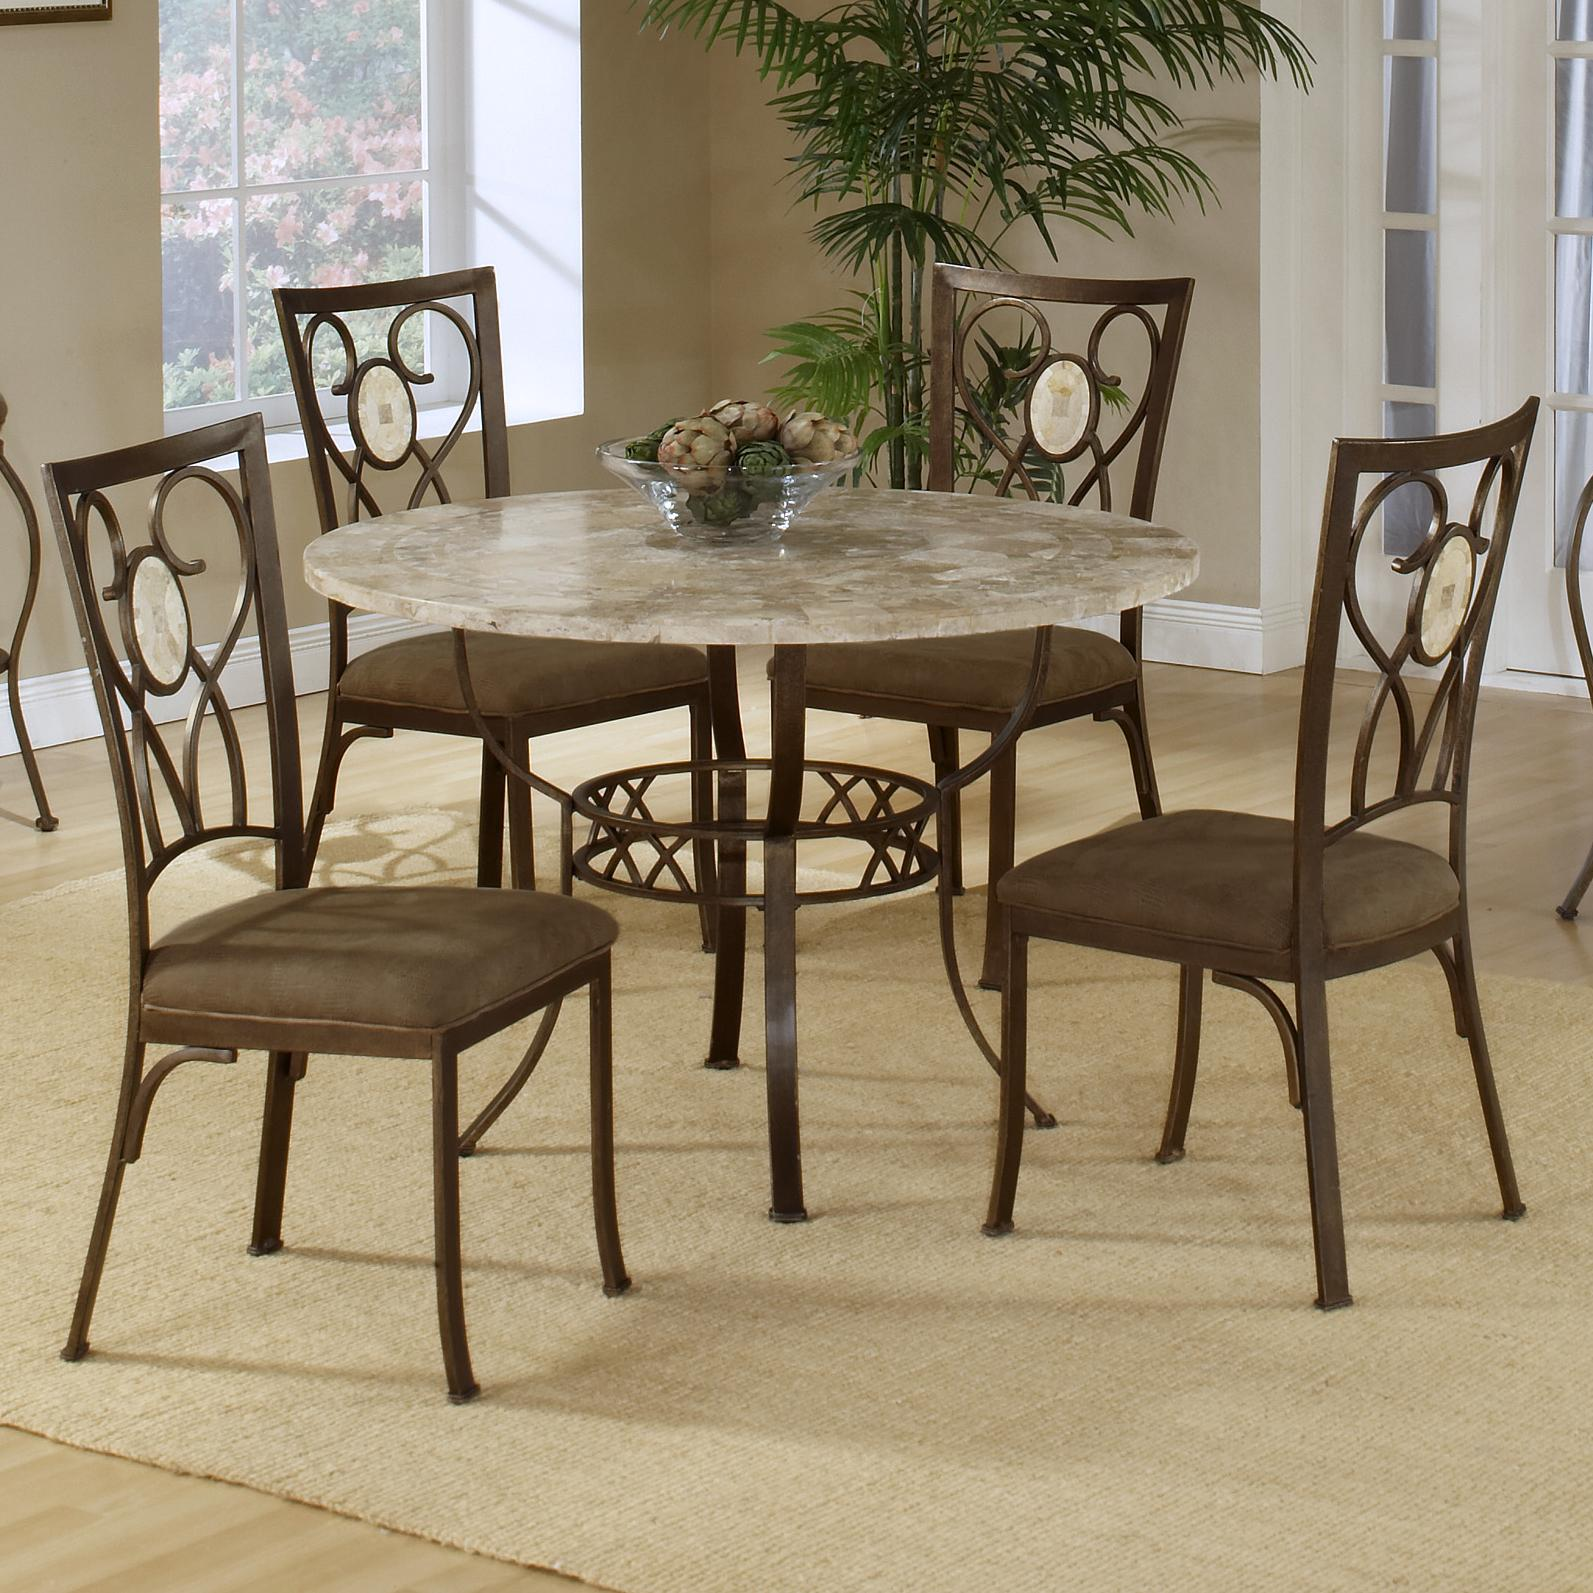 Hillsdale Brookside Five Piece Round Dining Set With Oval Back Chairs Olind